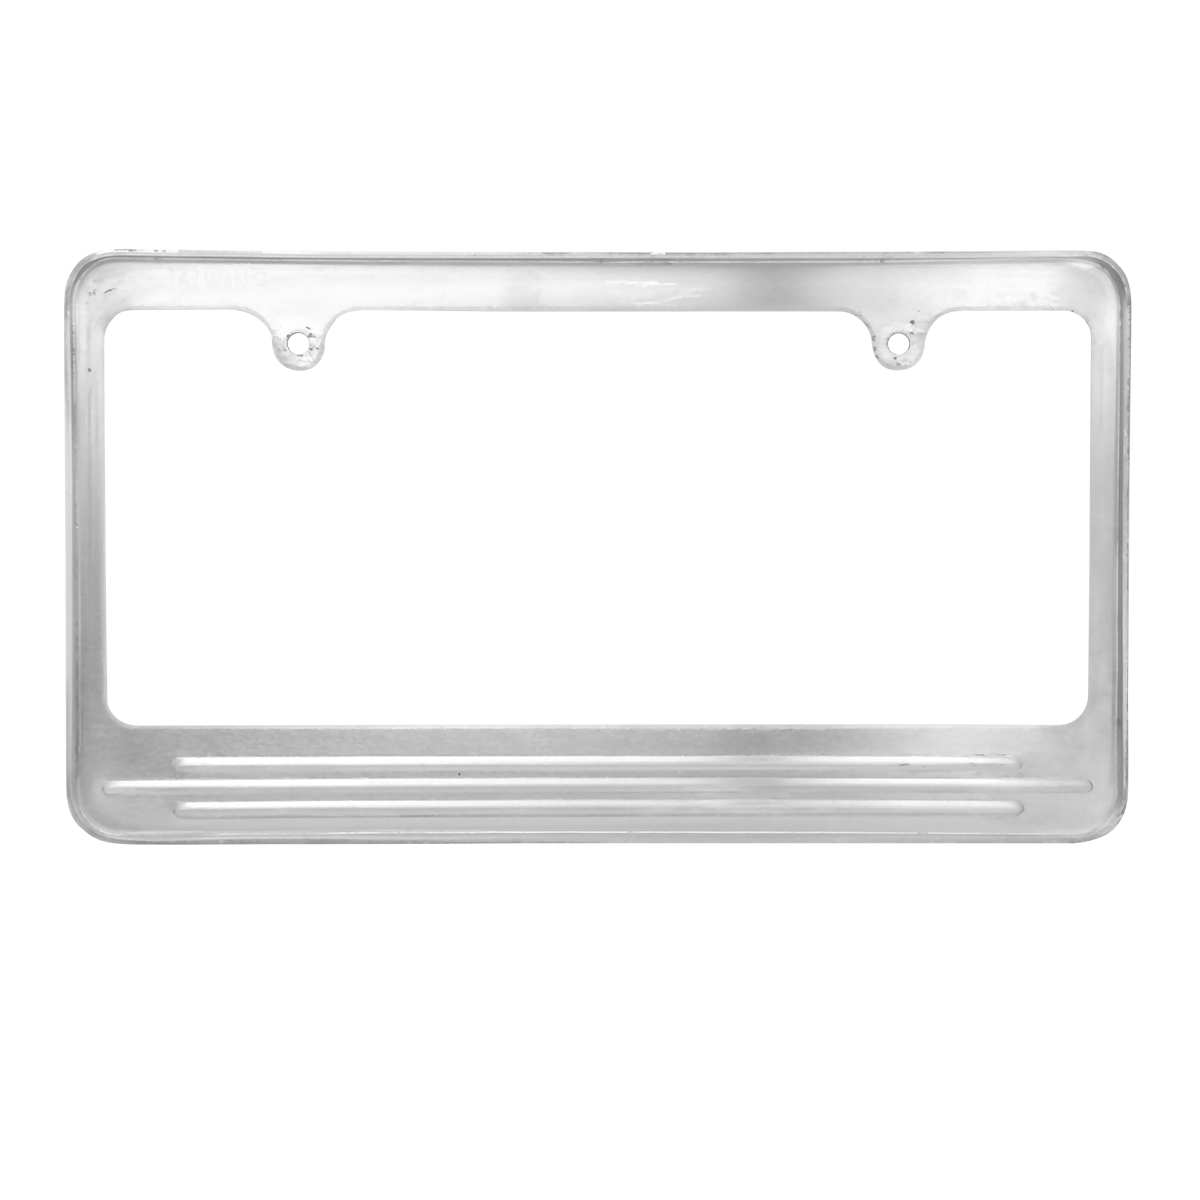 60473 Aluminum License Plate Frame with 2 Holes - Back View